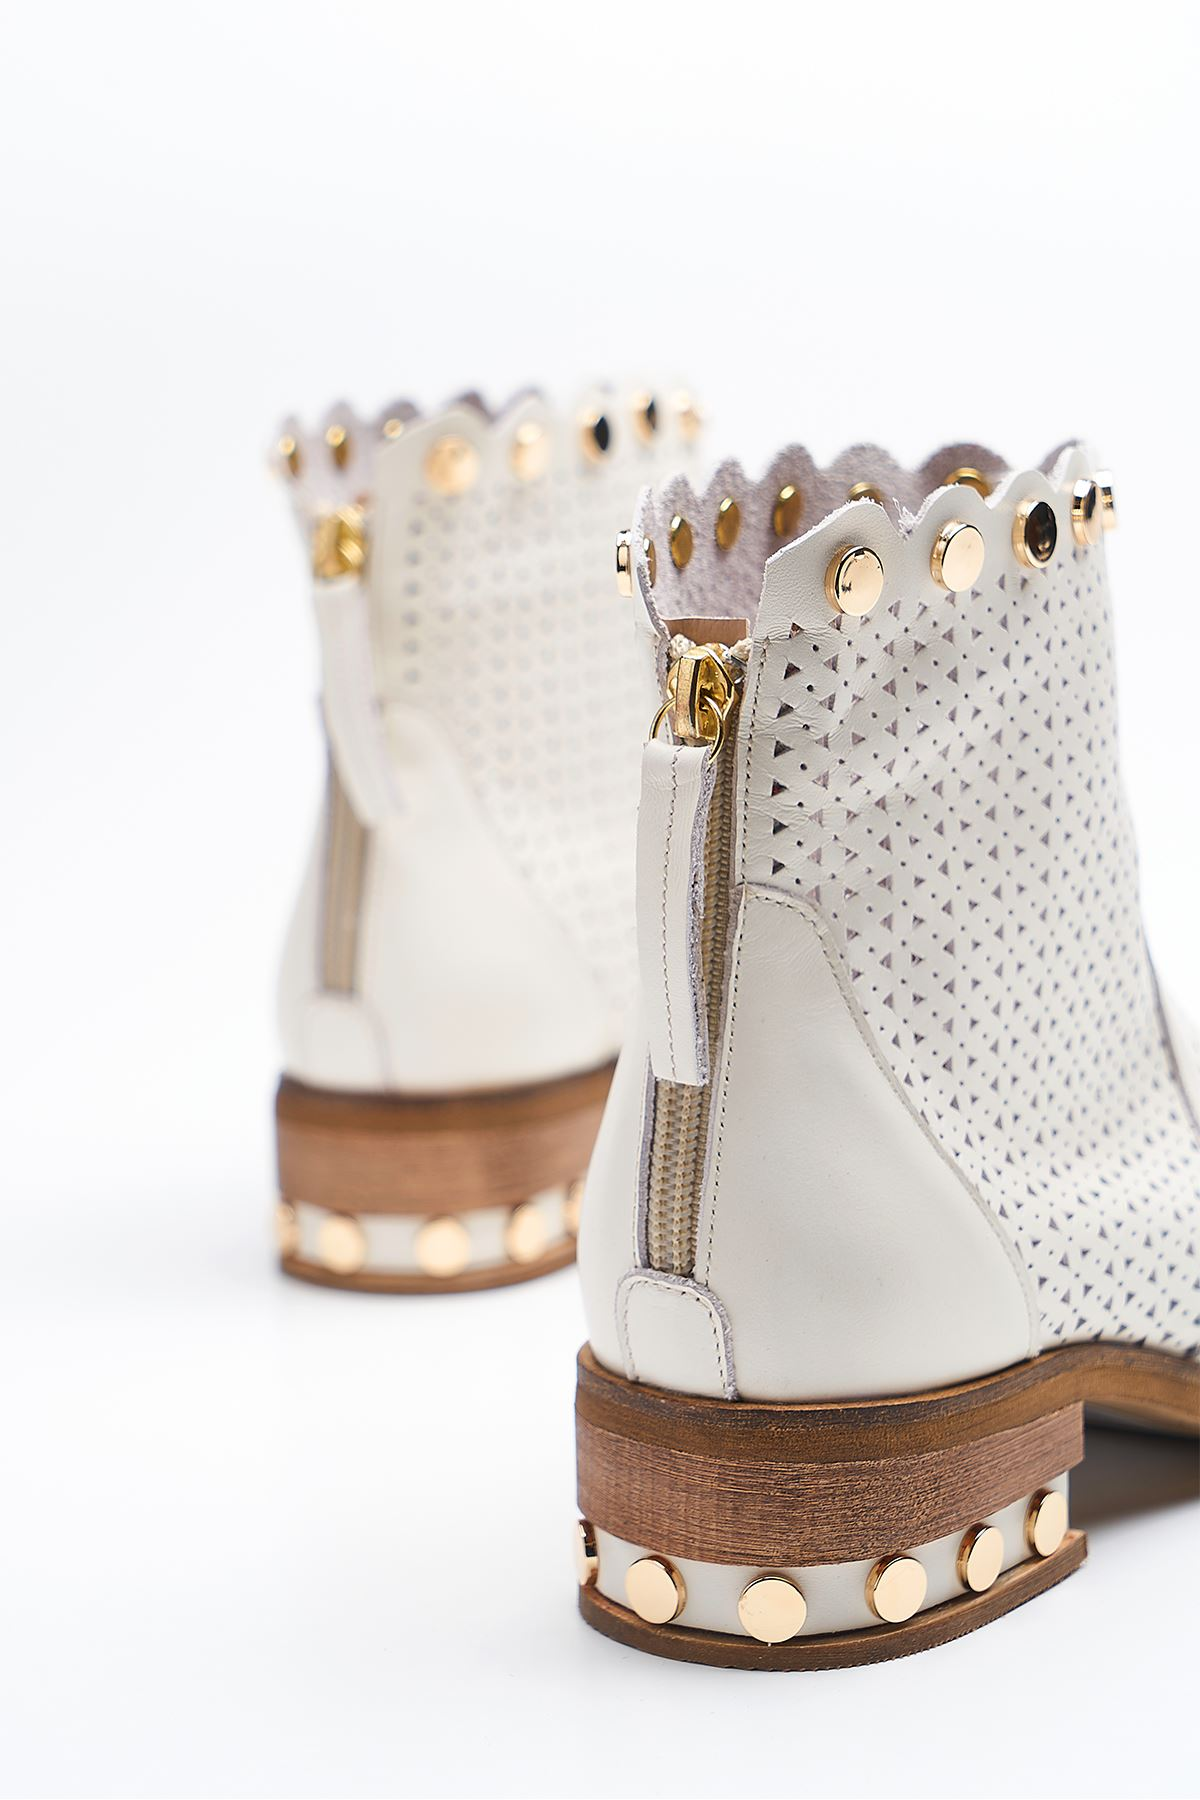 Gust White Genuine Leather Women's Summer Boots